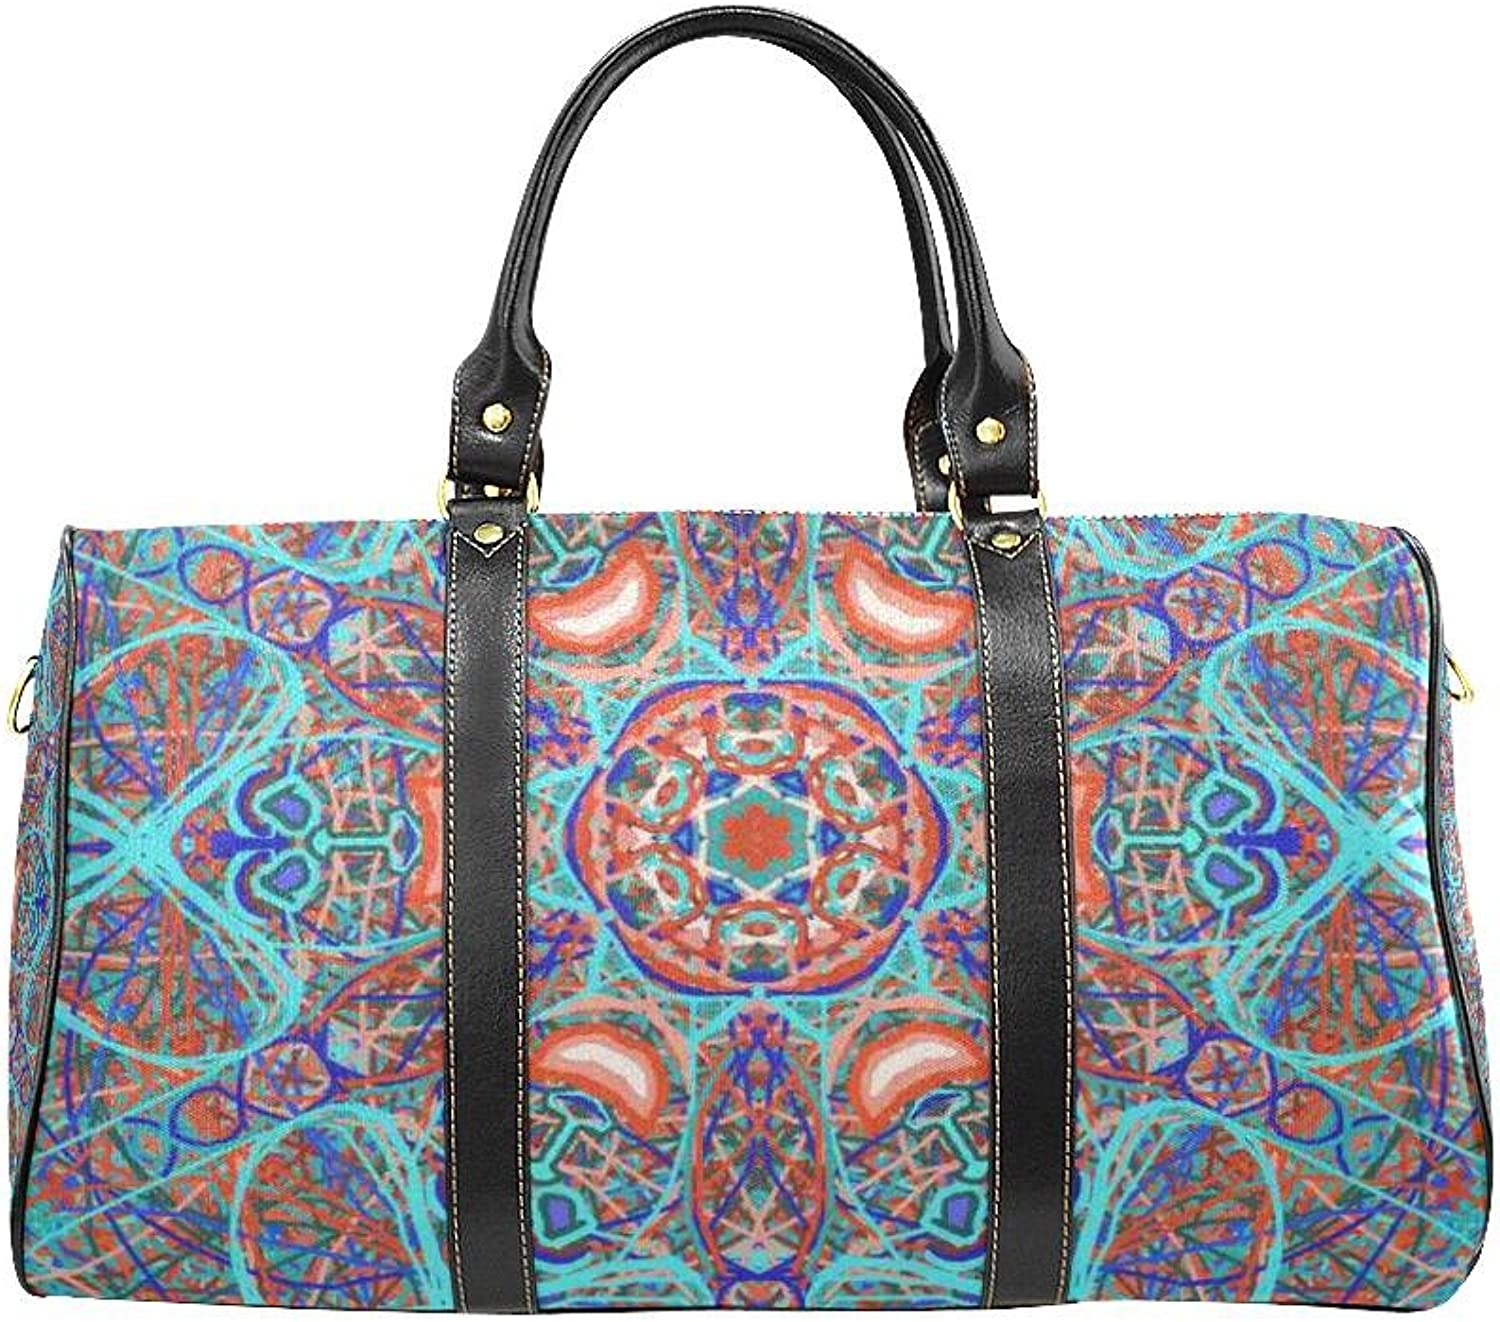 Sacred Geometry  Aladin  By MAR from Thleudron New Waterproof Travel Bag Small (Model 1639)